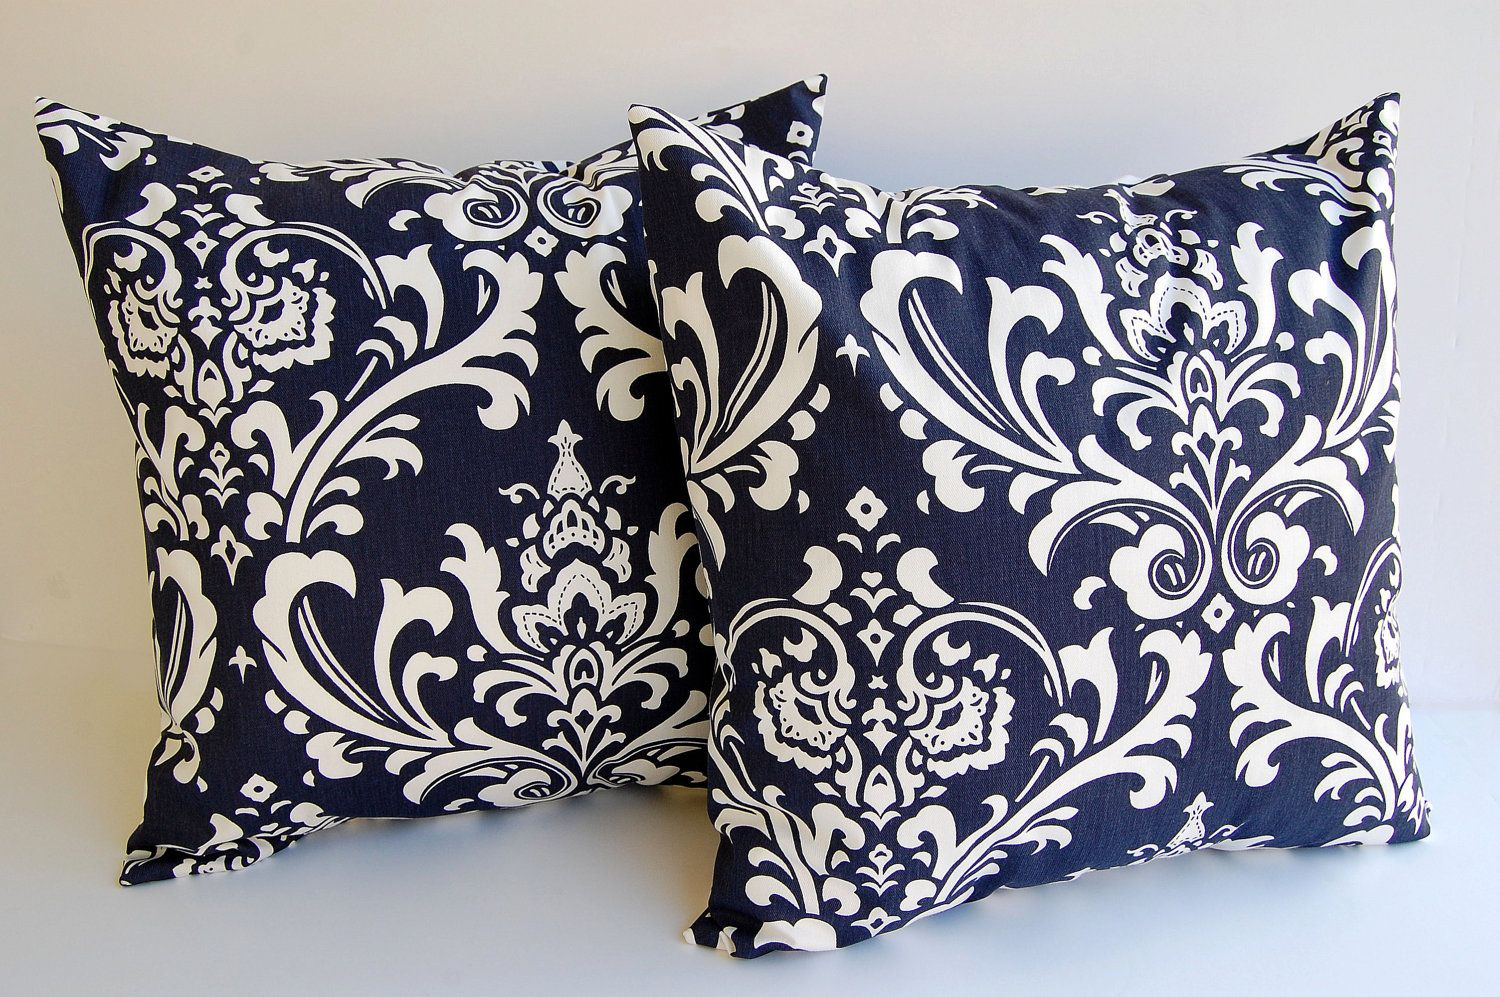 silk gold sequin navy il pillows block zoom color listing bead cover throw blue fullxfull detail cushion pillow